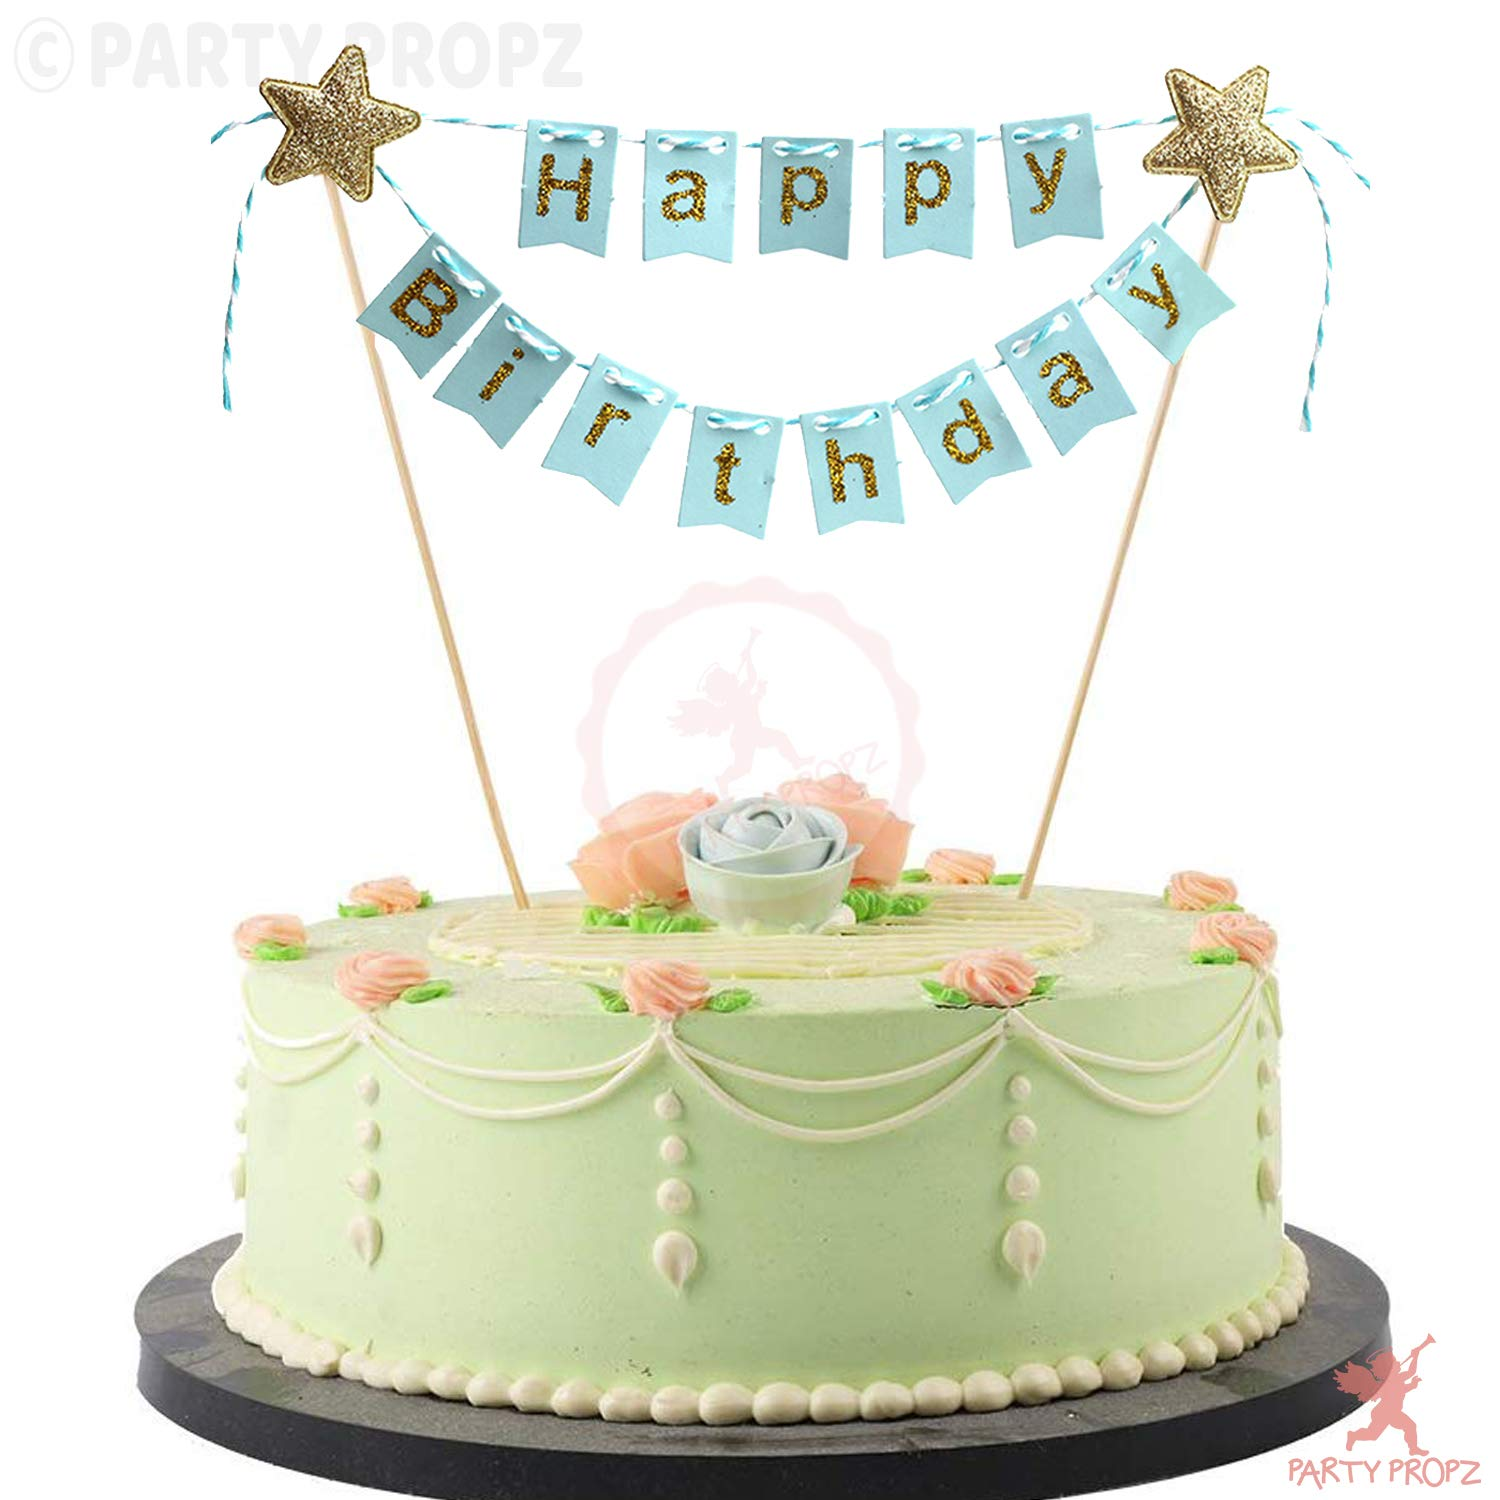 Party Propz Blue Golden Glitter Happy Birthday Cake Topper For Birthday Decoration Birthday Cake Topper For Girls Buy Online In Congo At Congo Desertcart Com Productid 168330158